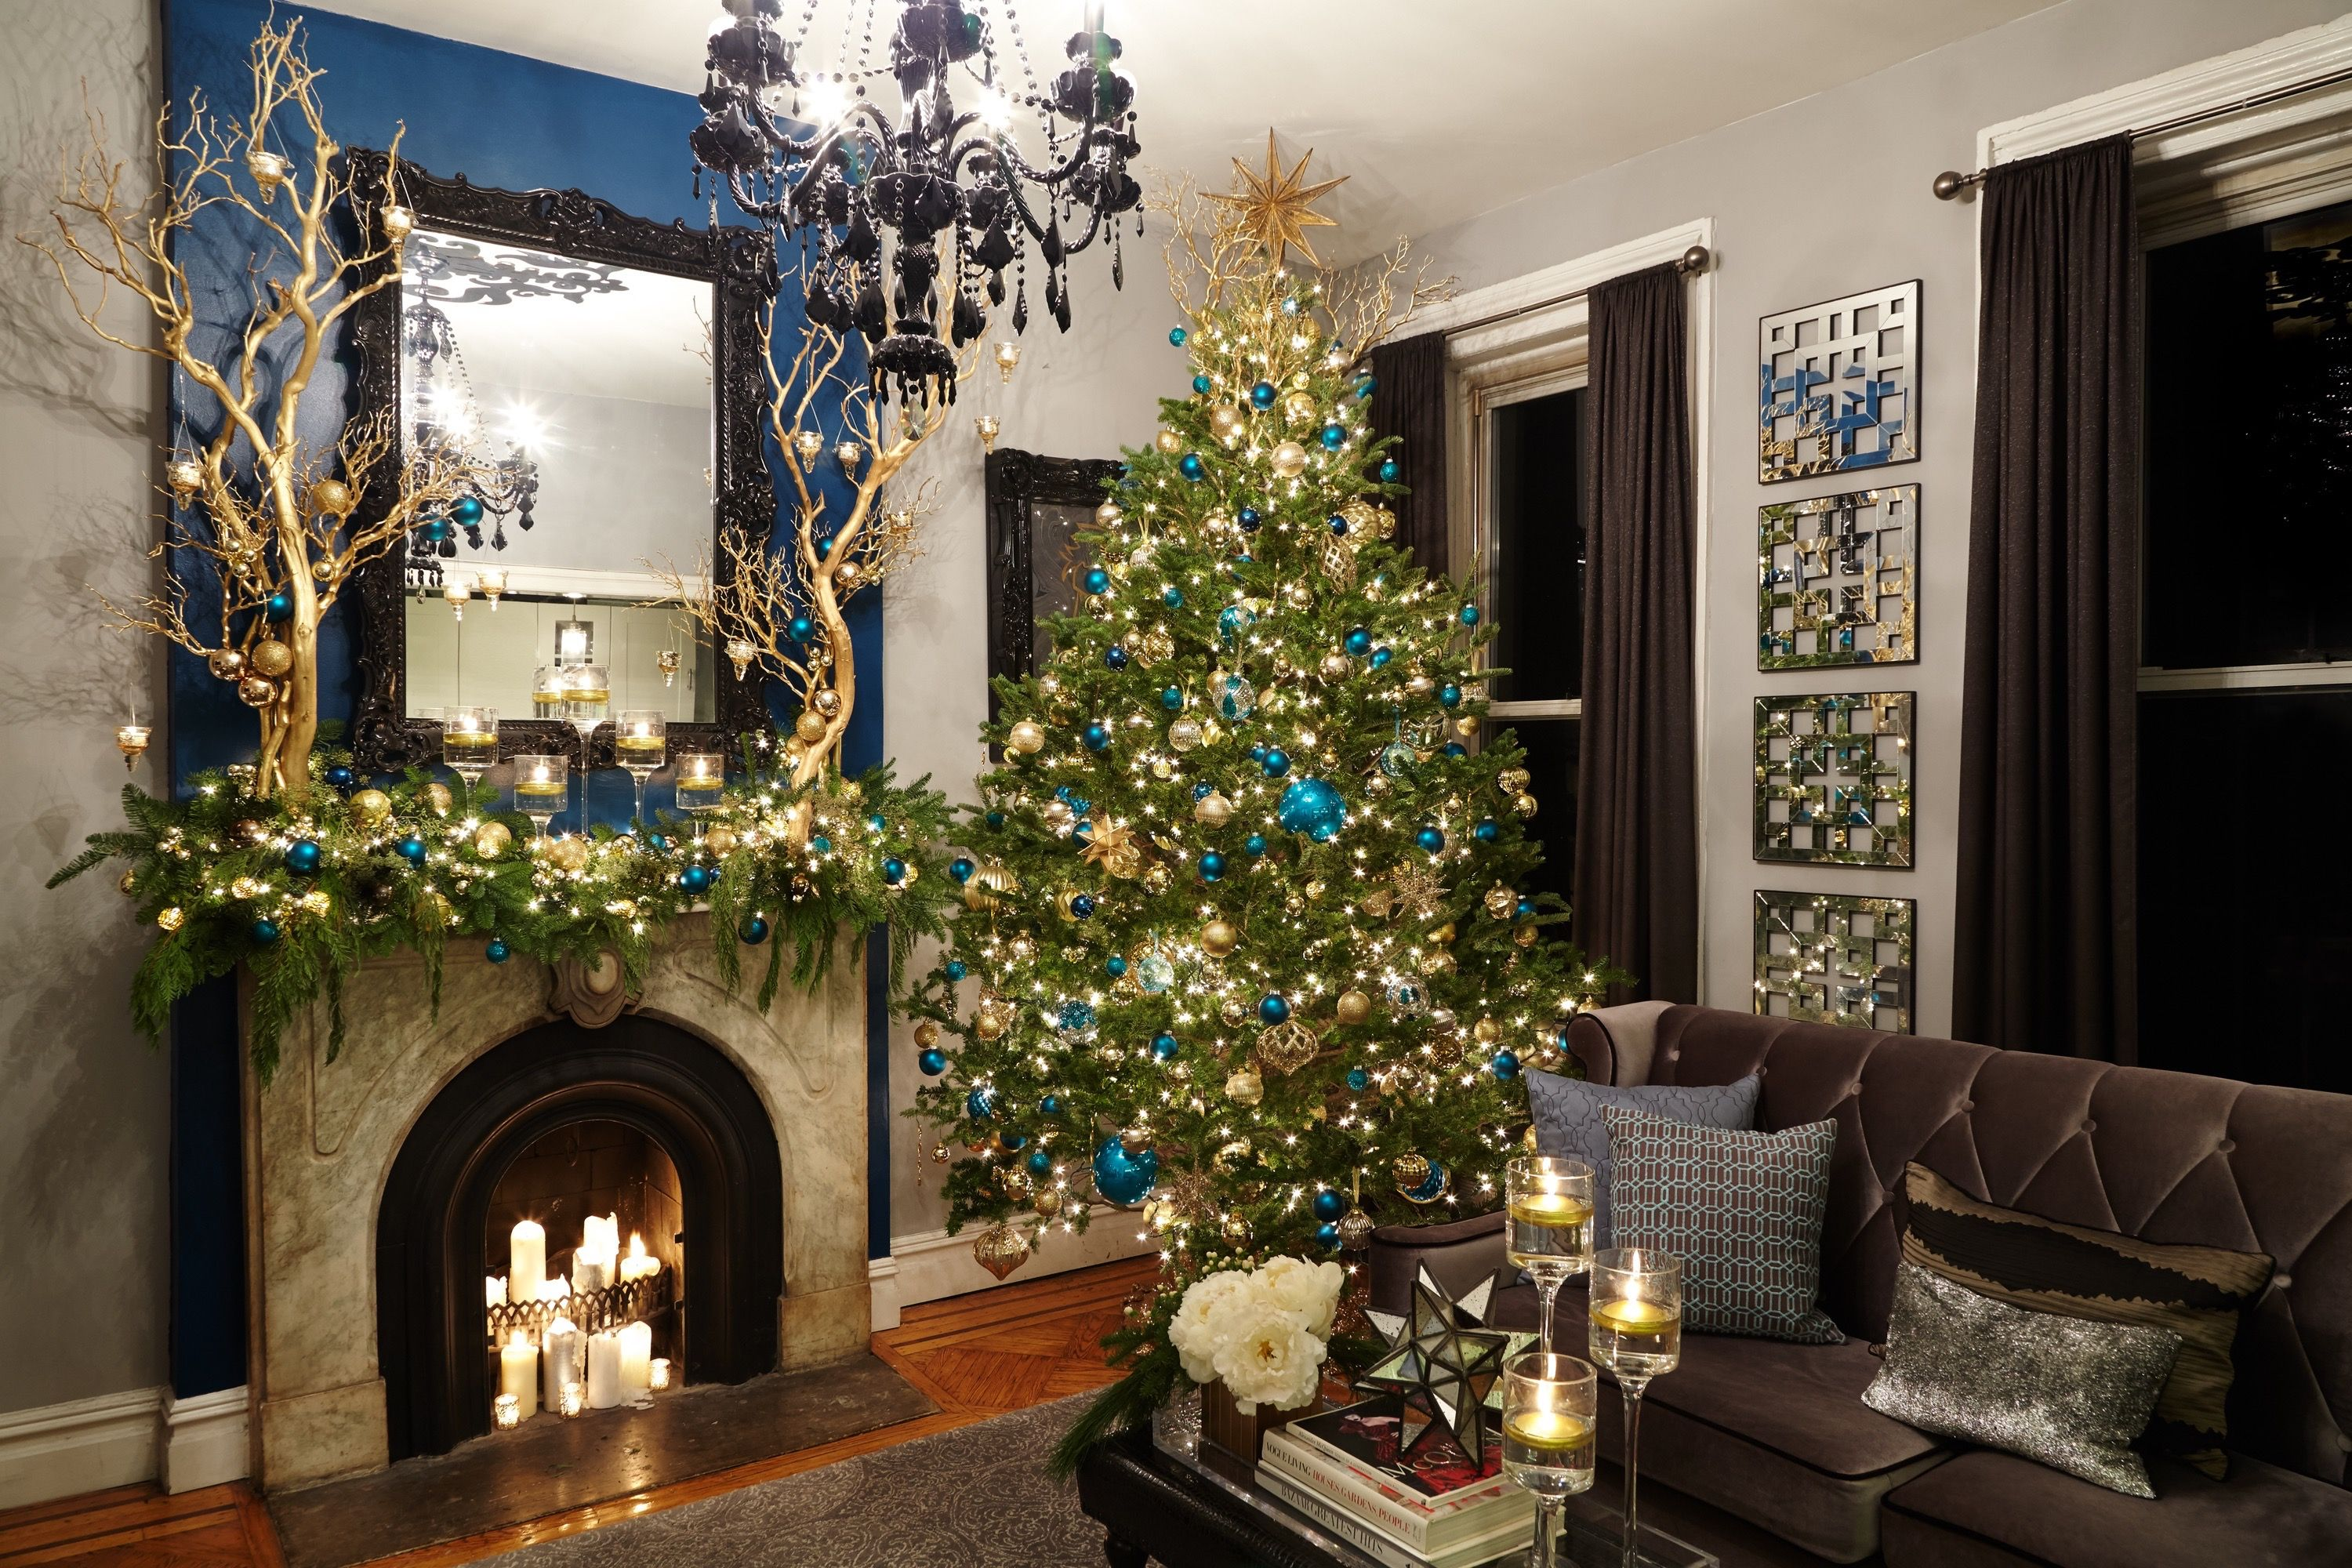 Take a look at how Michael decorated his prewar New York apartment